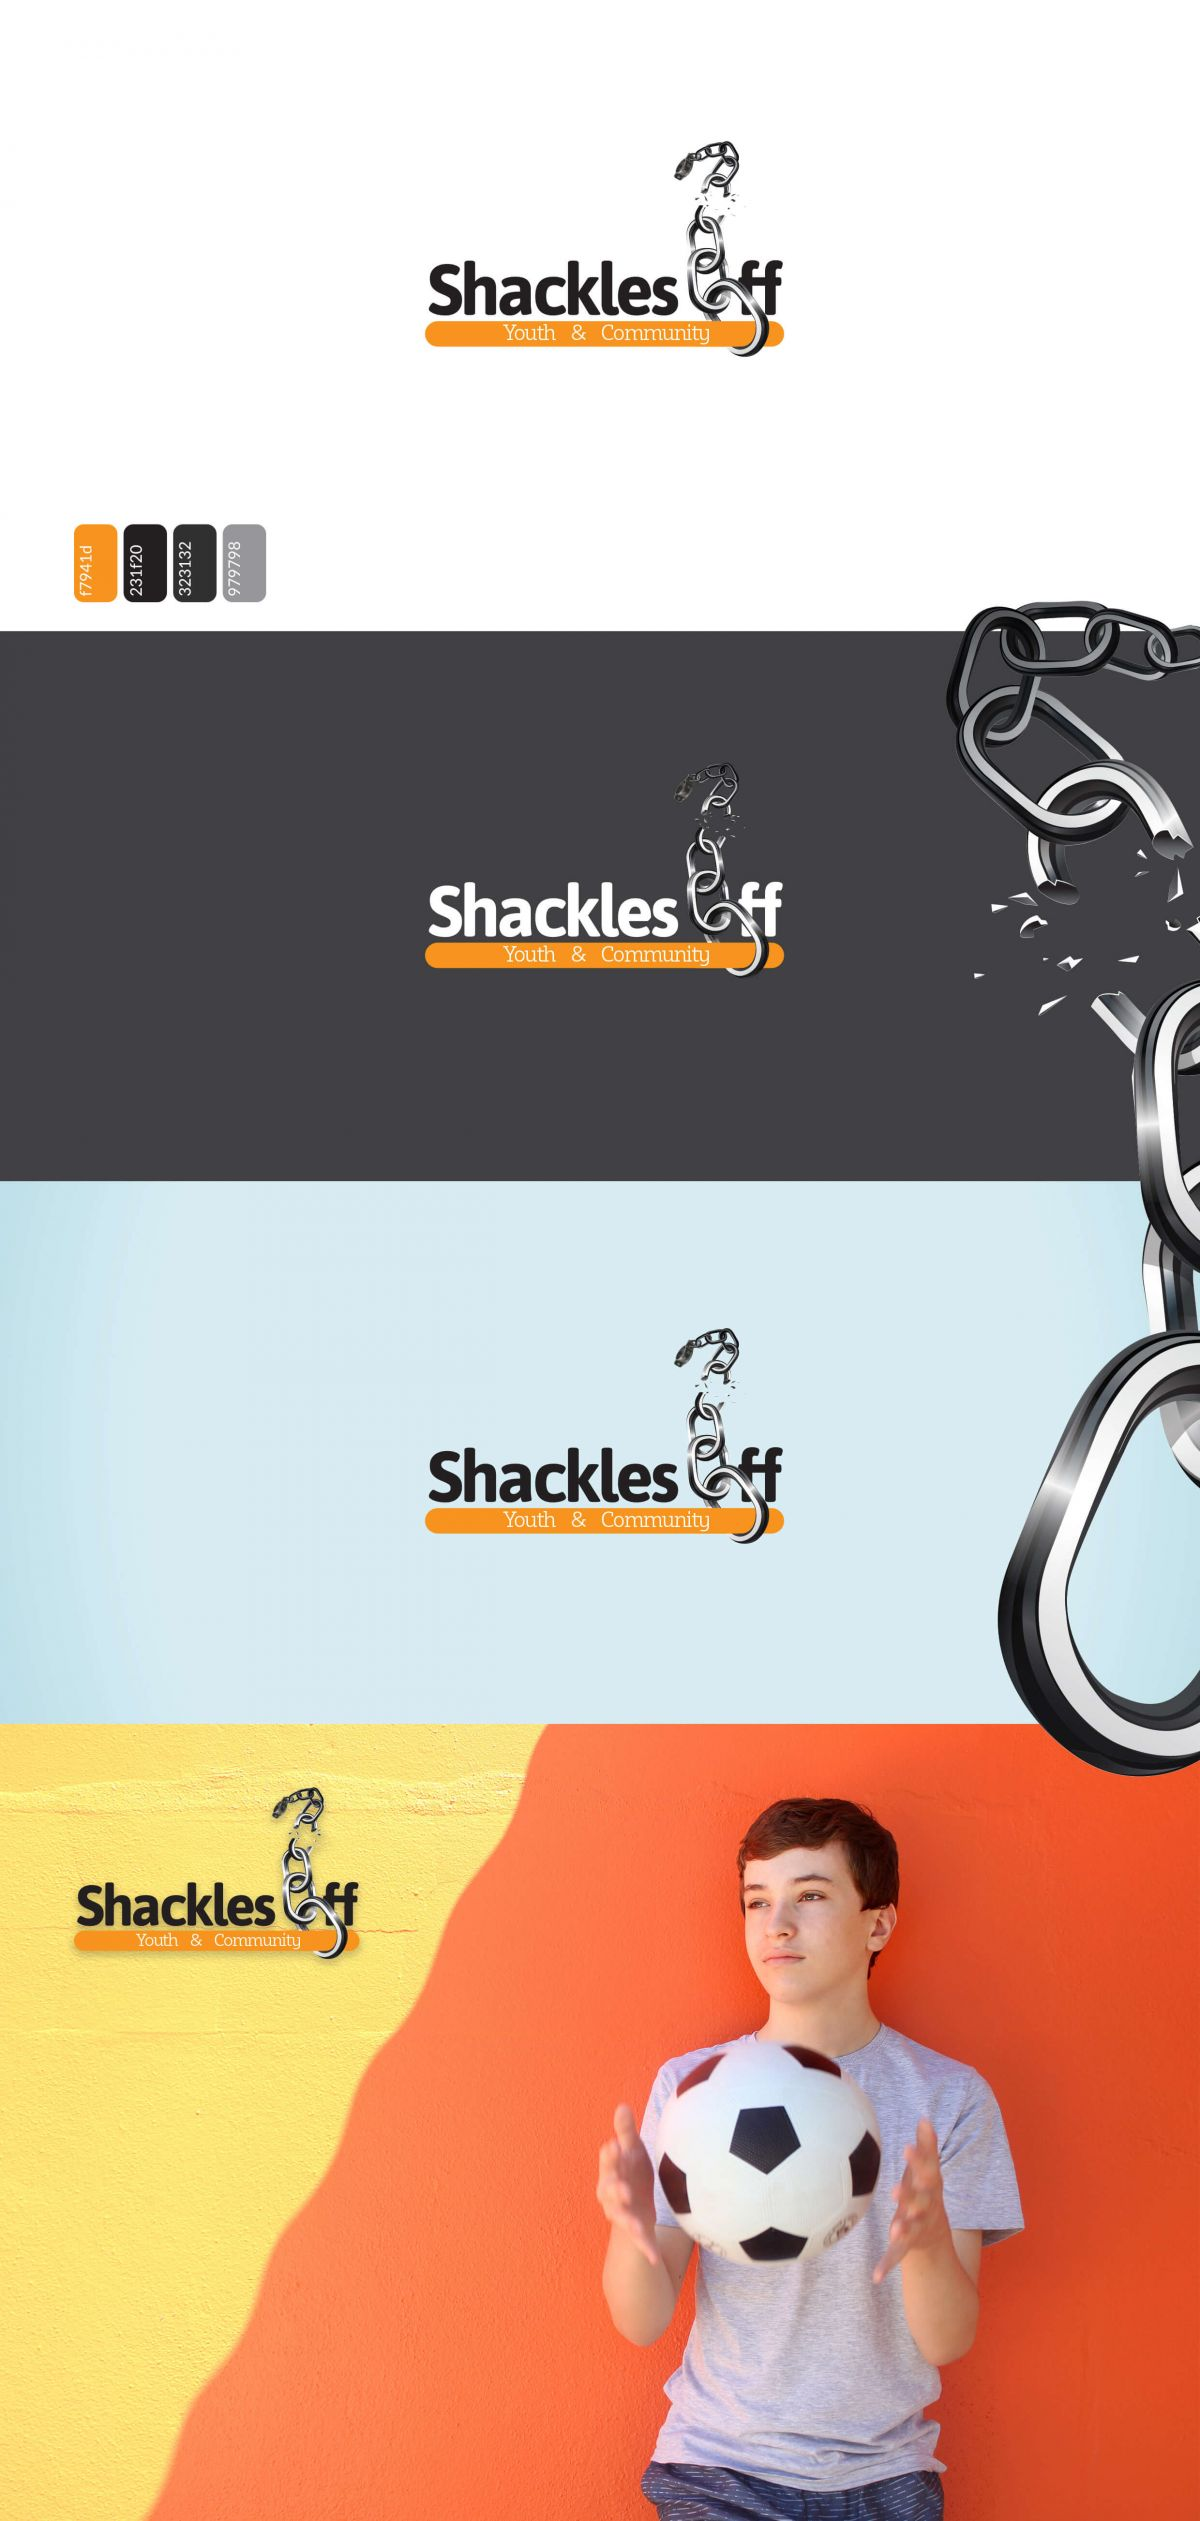 Shackles Off Youth Project Brand Identity